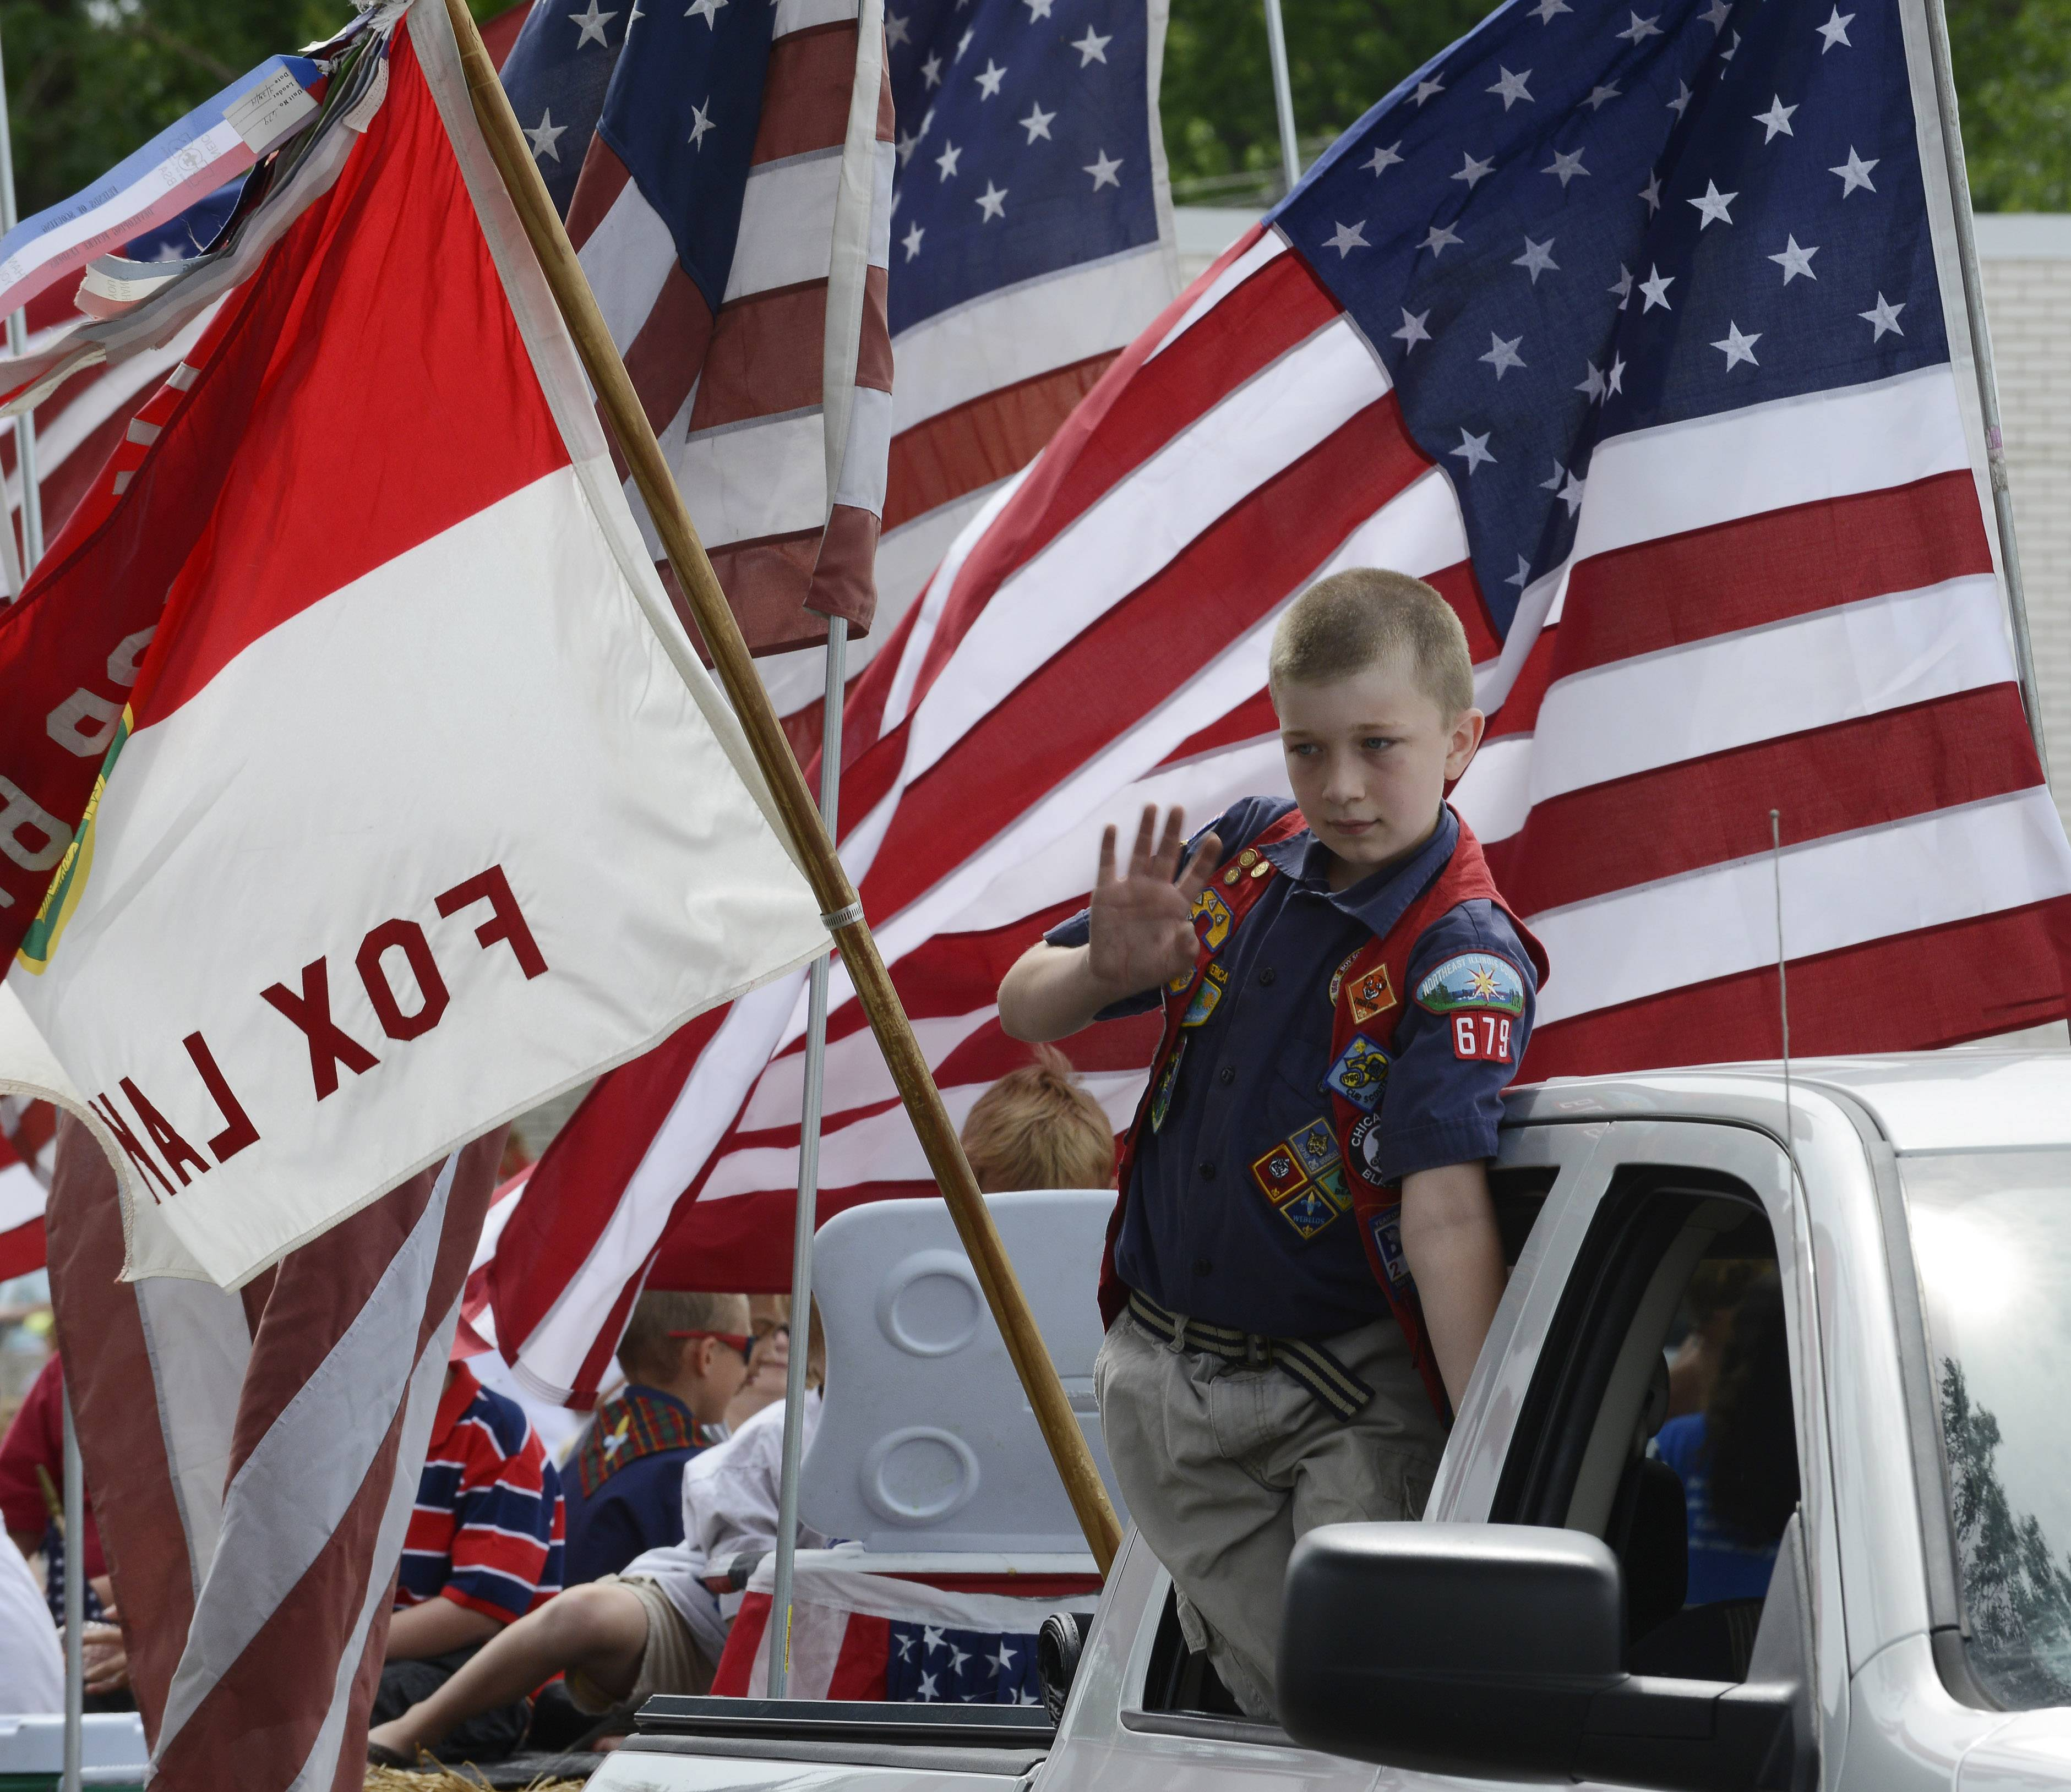 Bradley Berd, 10, of Cub Scout Pack 679, rides in Saturday's parade in Fox Lake.